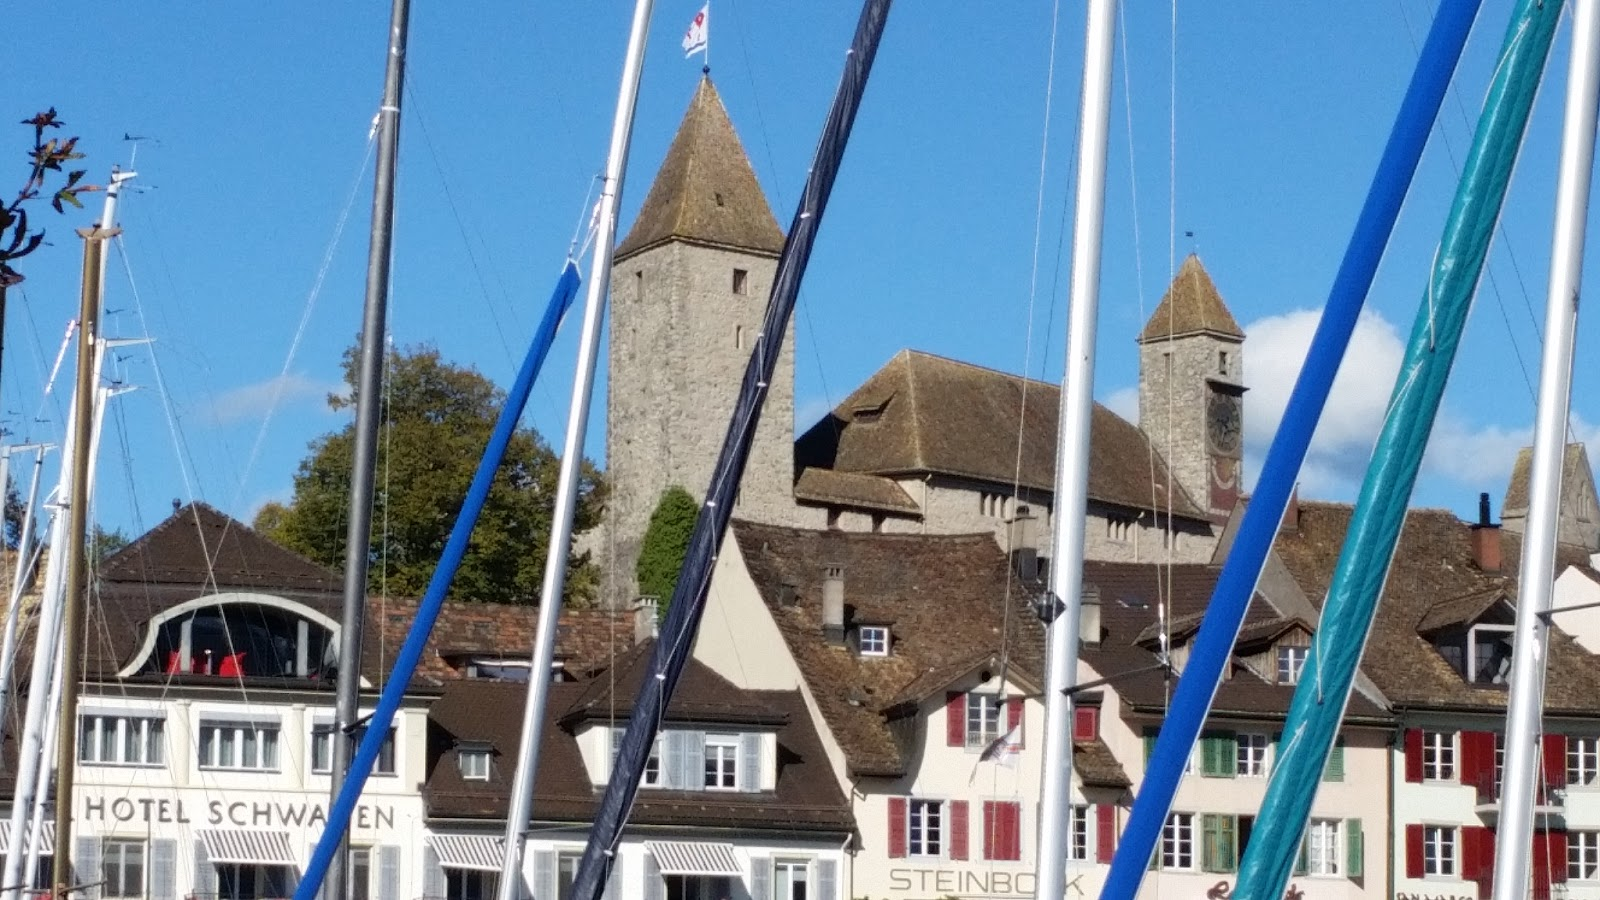 Rapperswil - Jona, Switzerland